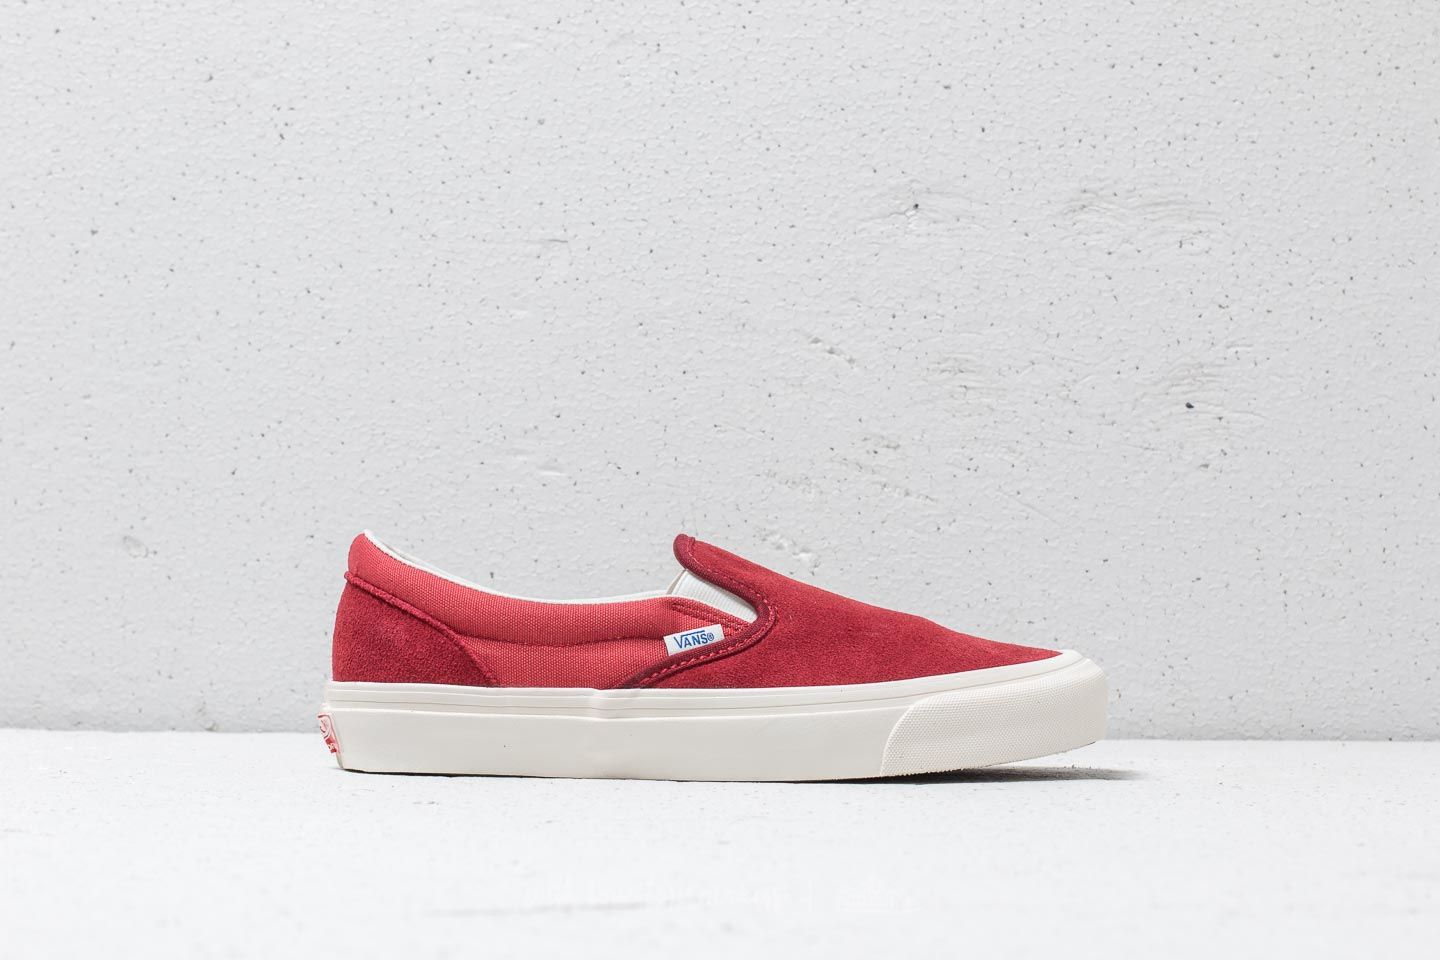 Vans OG Classic Slip On (Suede Canvas) Sun Dried Tomato Mineral Red | Footshop